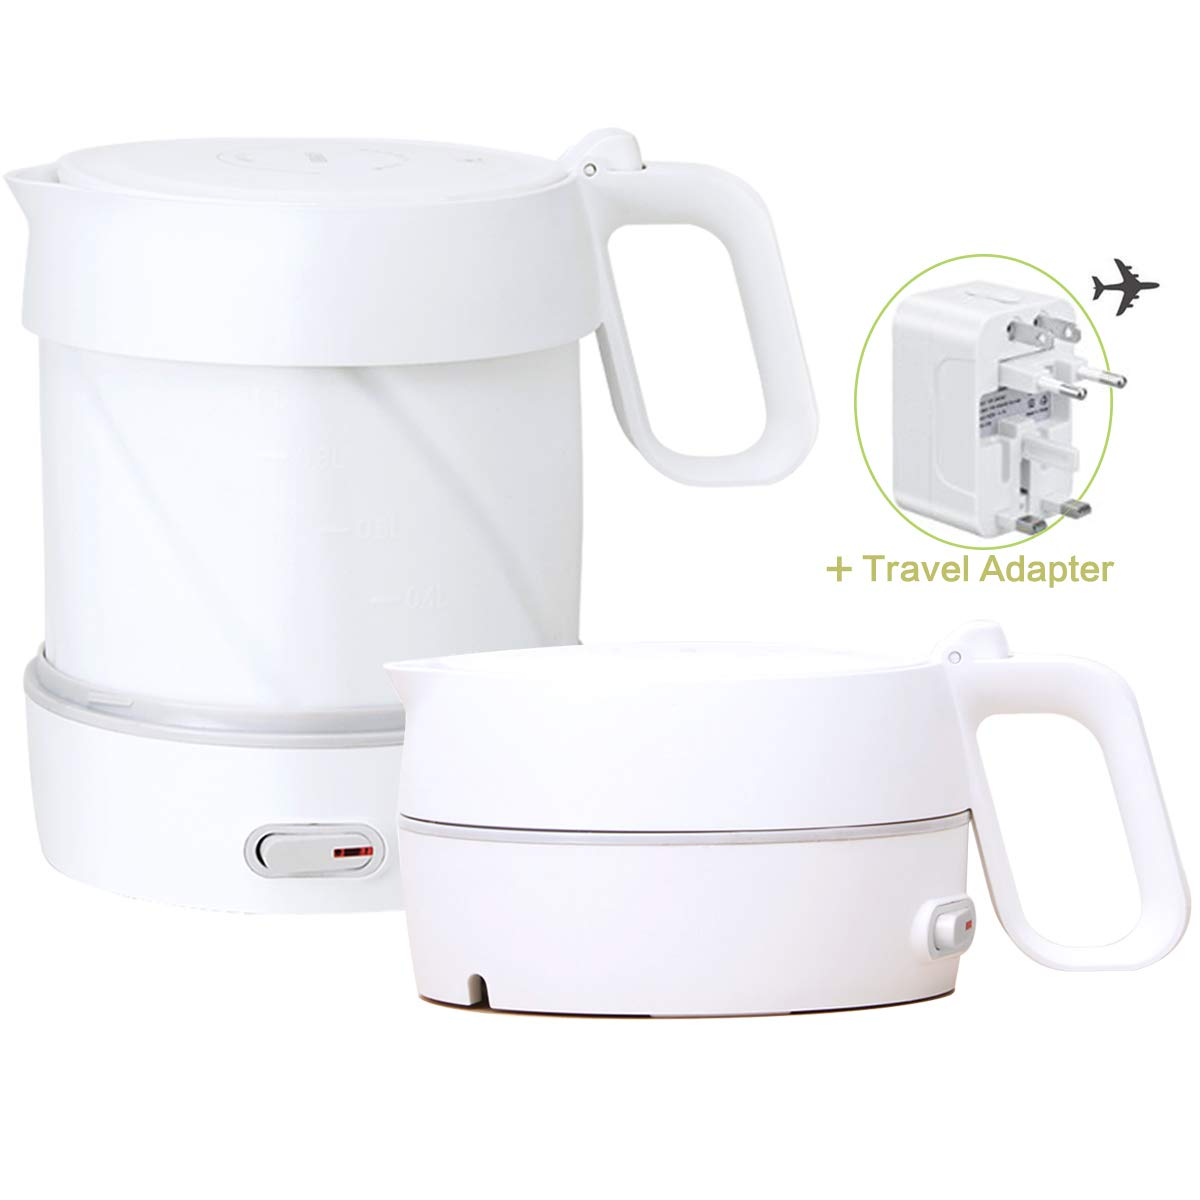 HOMYHOME Travel Foldable Electric Kettle – Fast Water Boiling – Food Grade Silicone – Small, Collapsible, Portable – Boil Dry Protection – 1 Liter 1.8 Quart – 110 220v – White